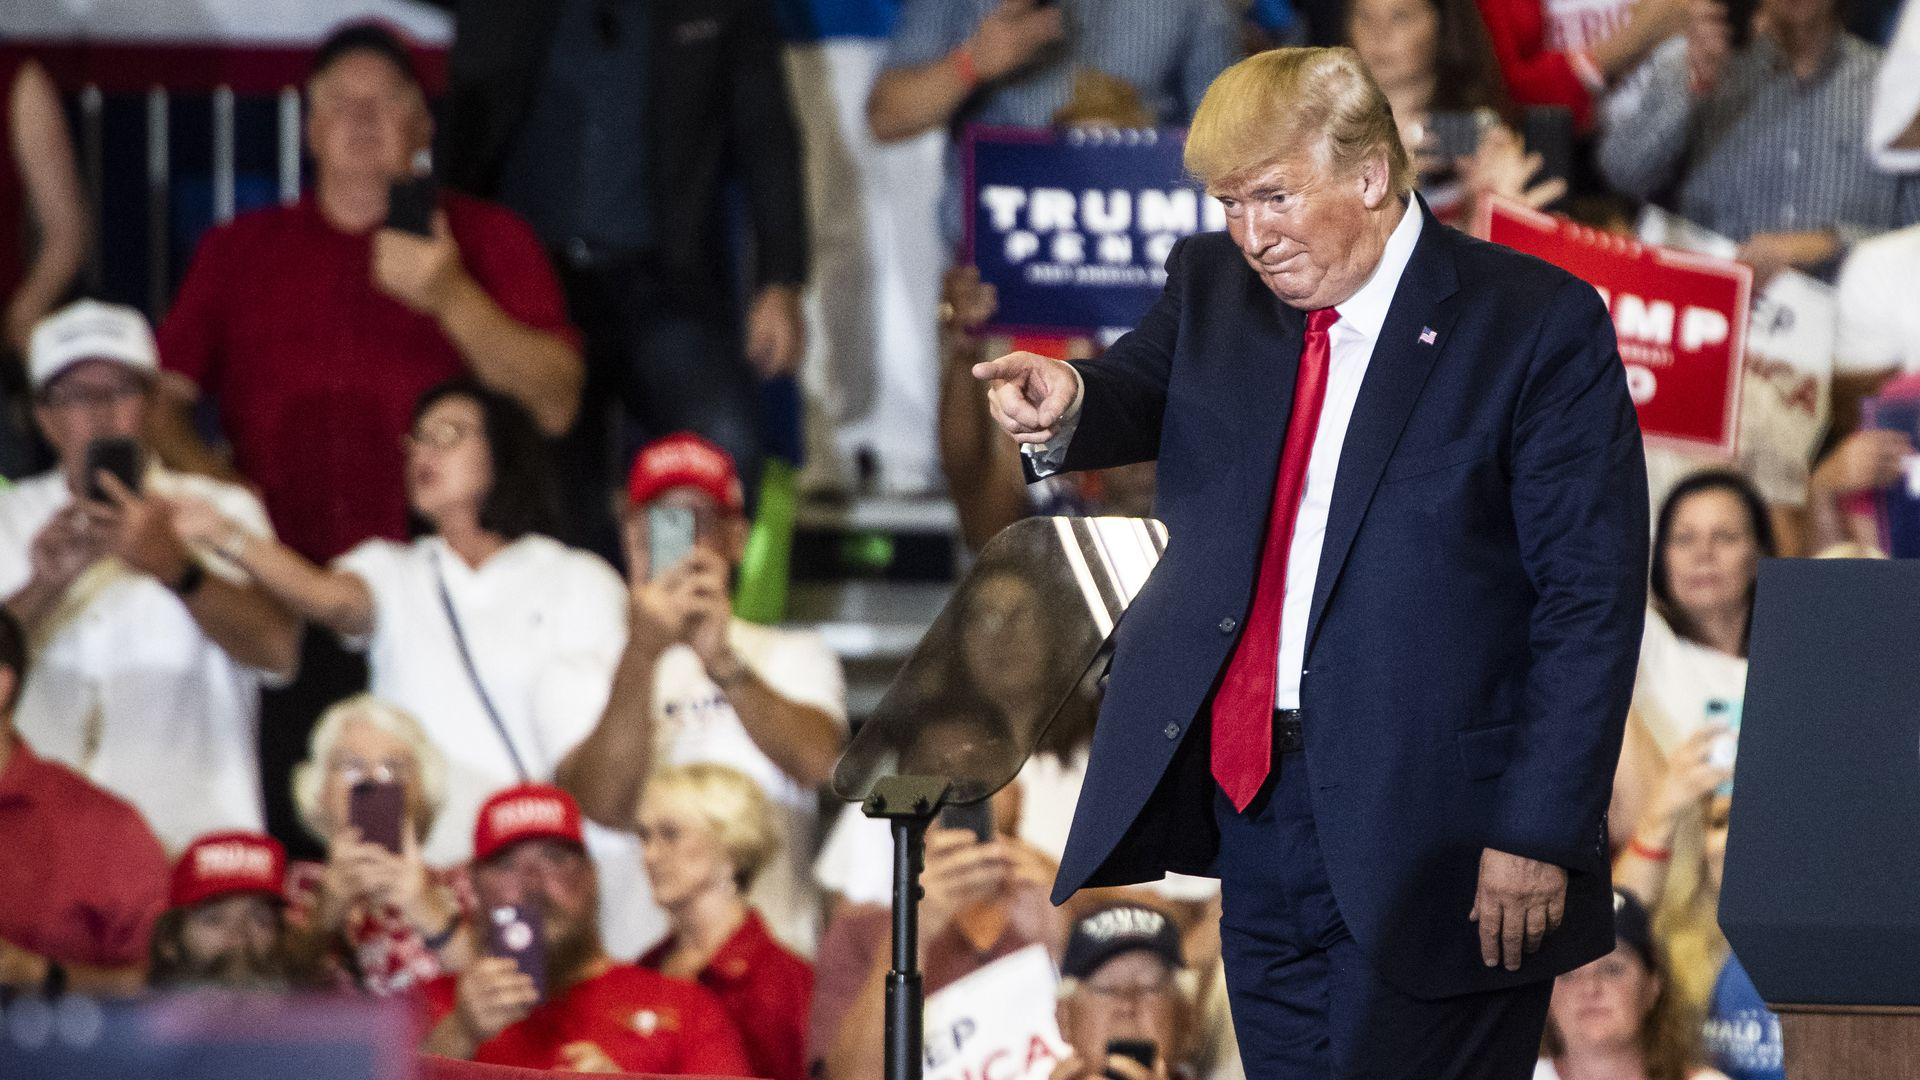 Report: Trump re-election PAC plans to track smartphone data to find non-registered voters